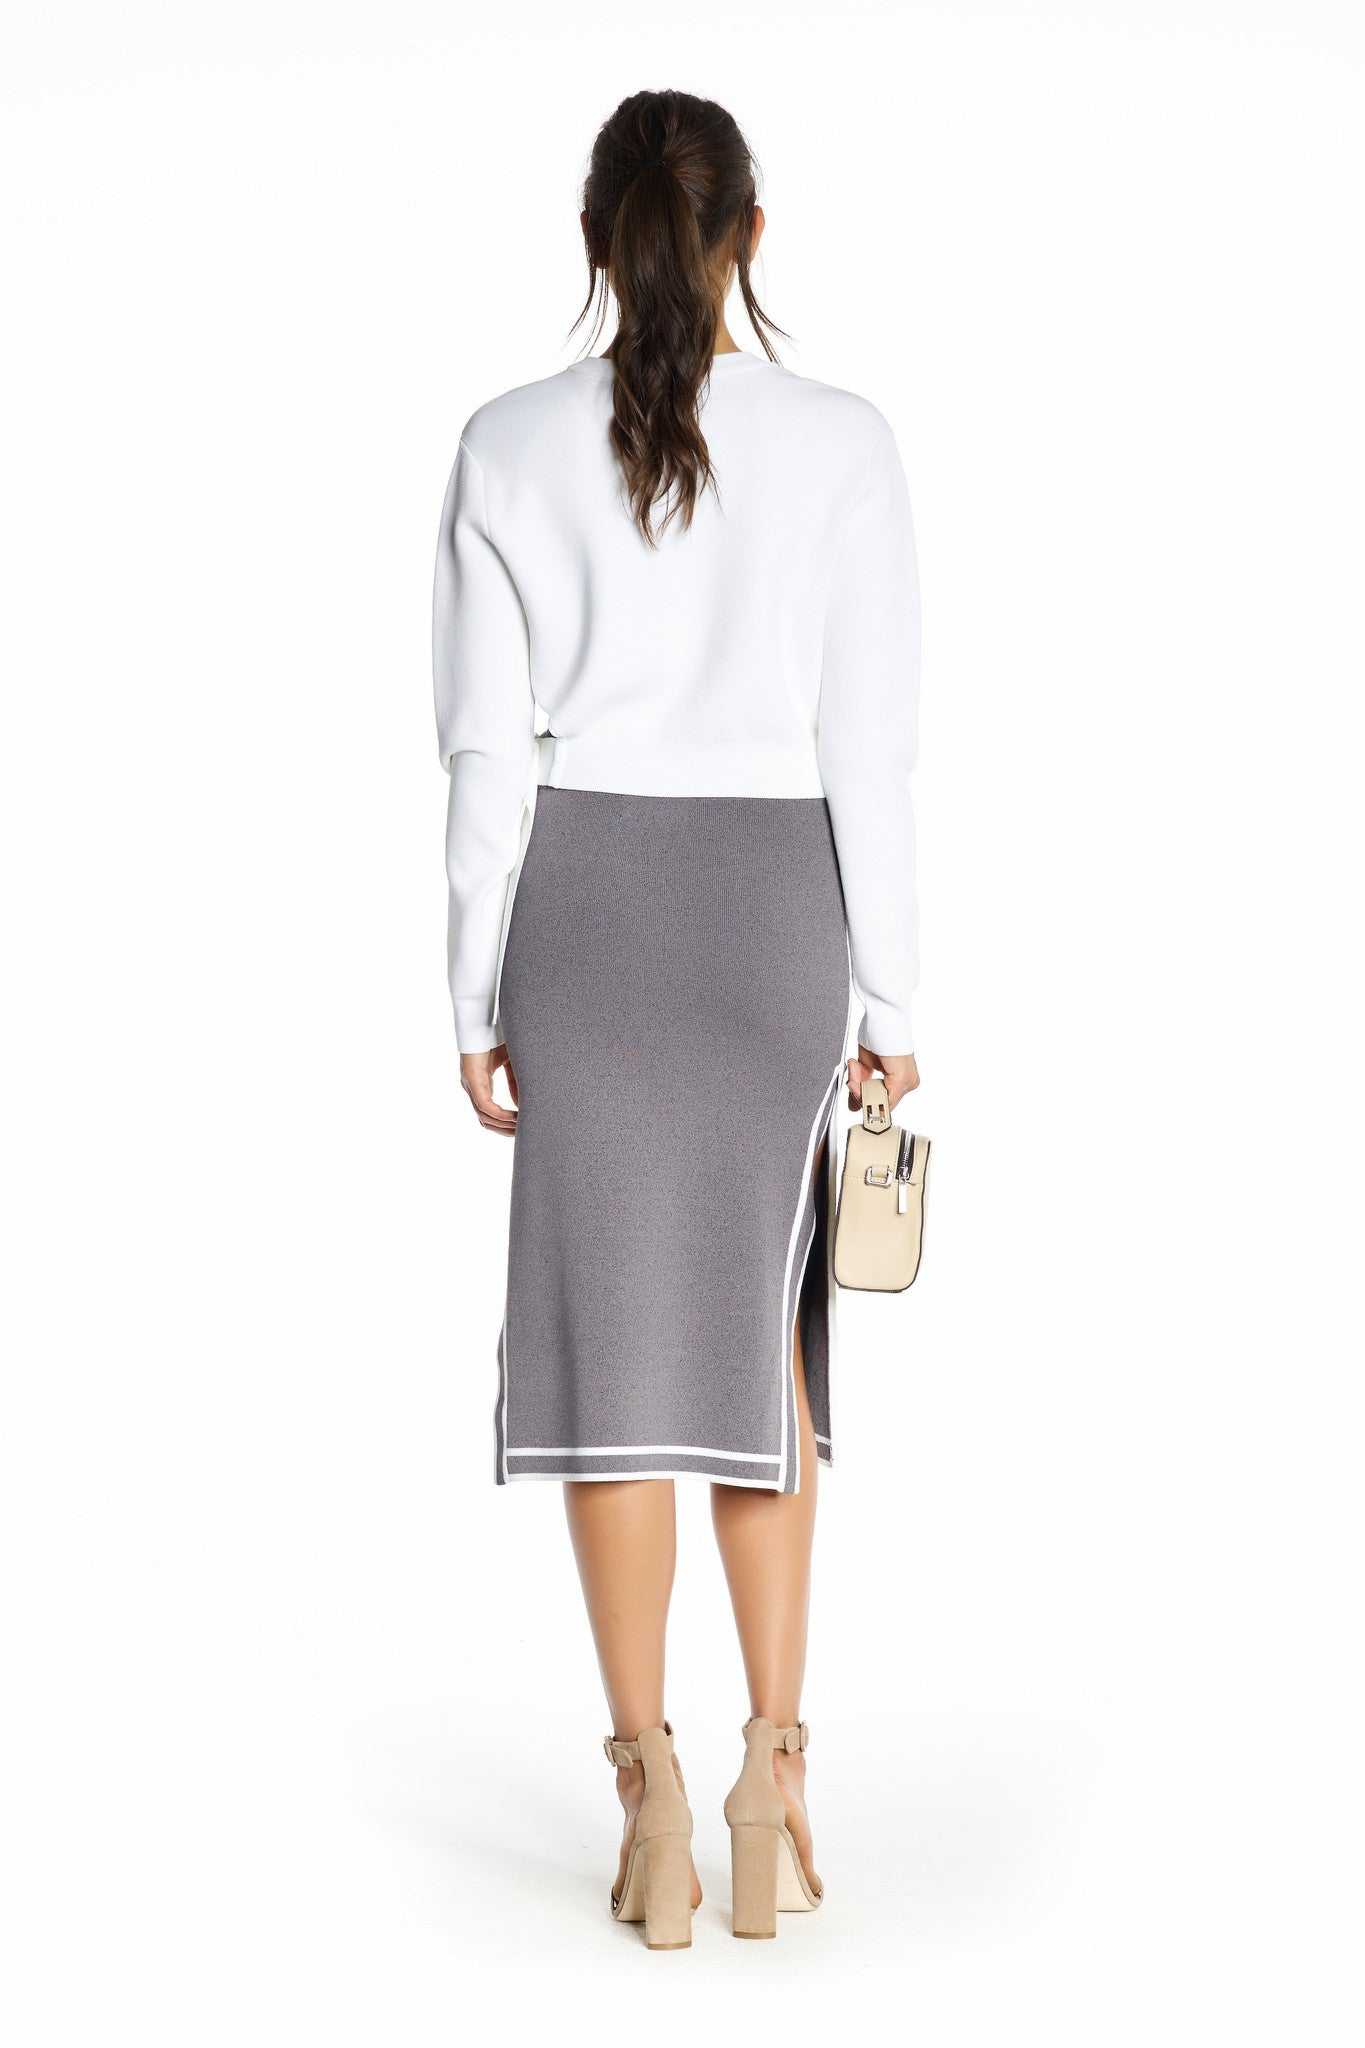 SPORTS BORDER SKIRT GREY SKIRTS by KENDALL + KYLIE